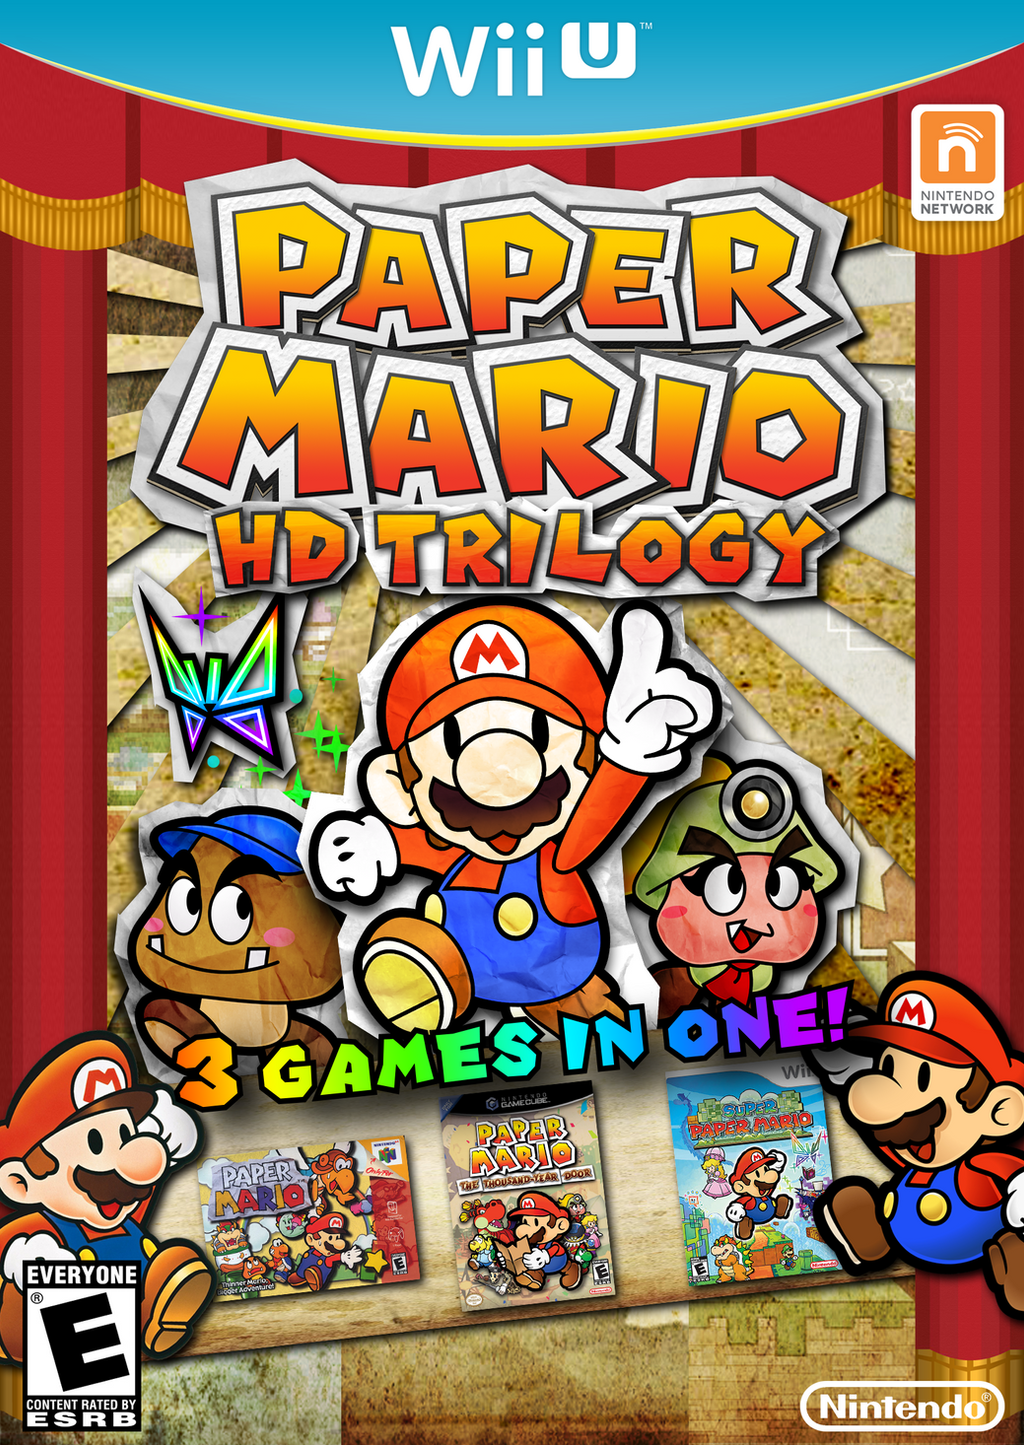 Paper Mario HD Trilogy (What do you think?) - Paper Mario